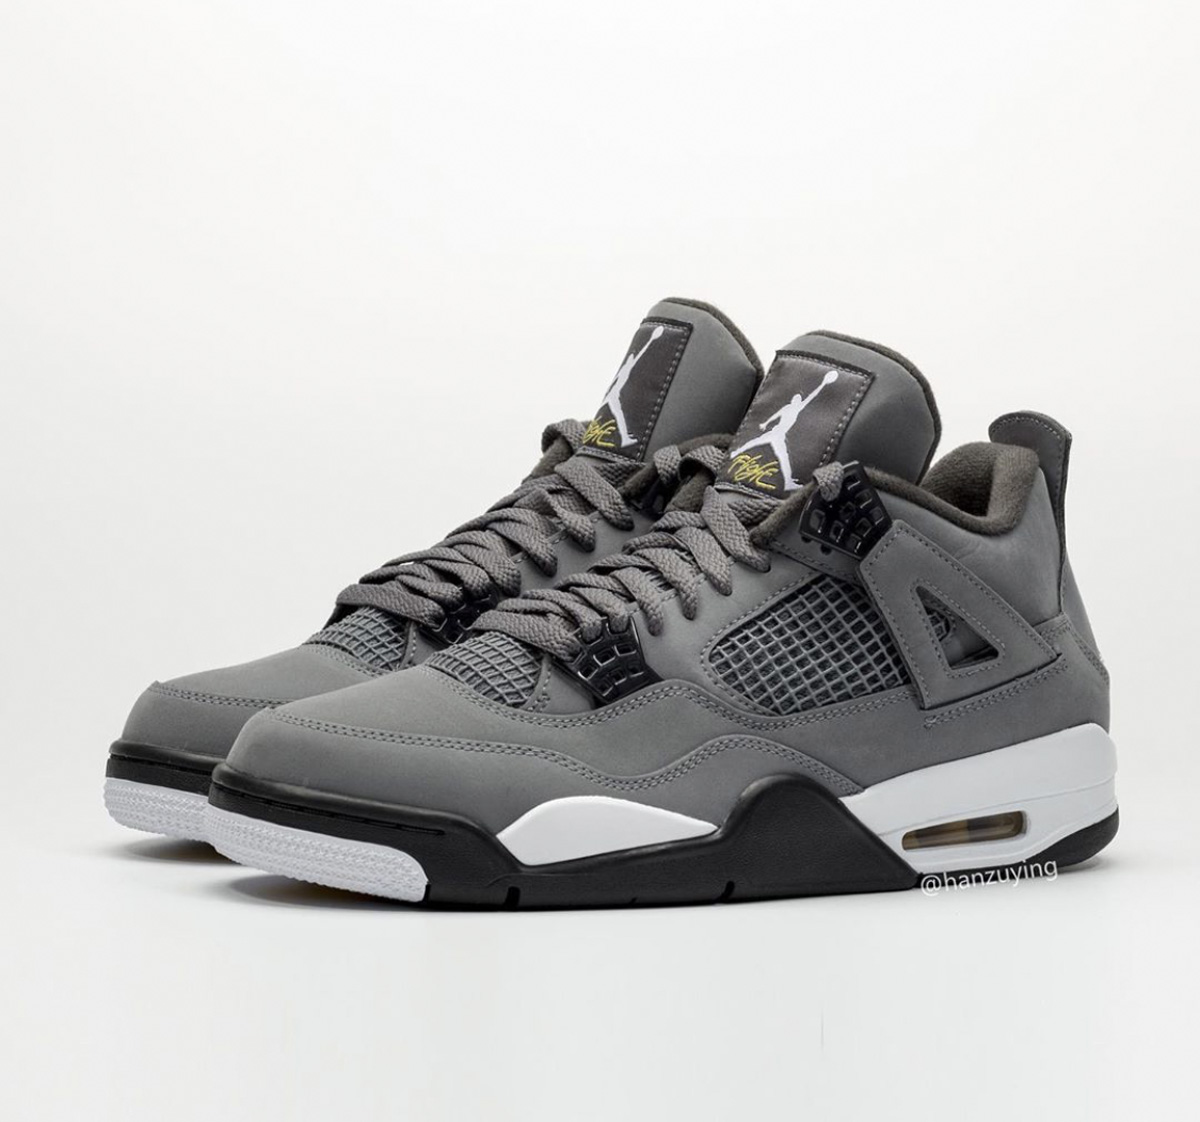 A Complete Look At The Upcoming Air Jordan 4 Cool Grey Retro For 2019 Weartesters